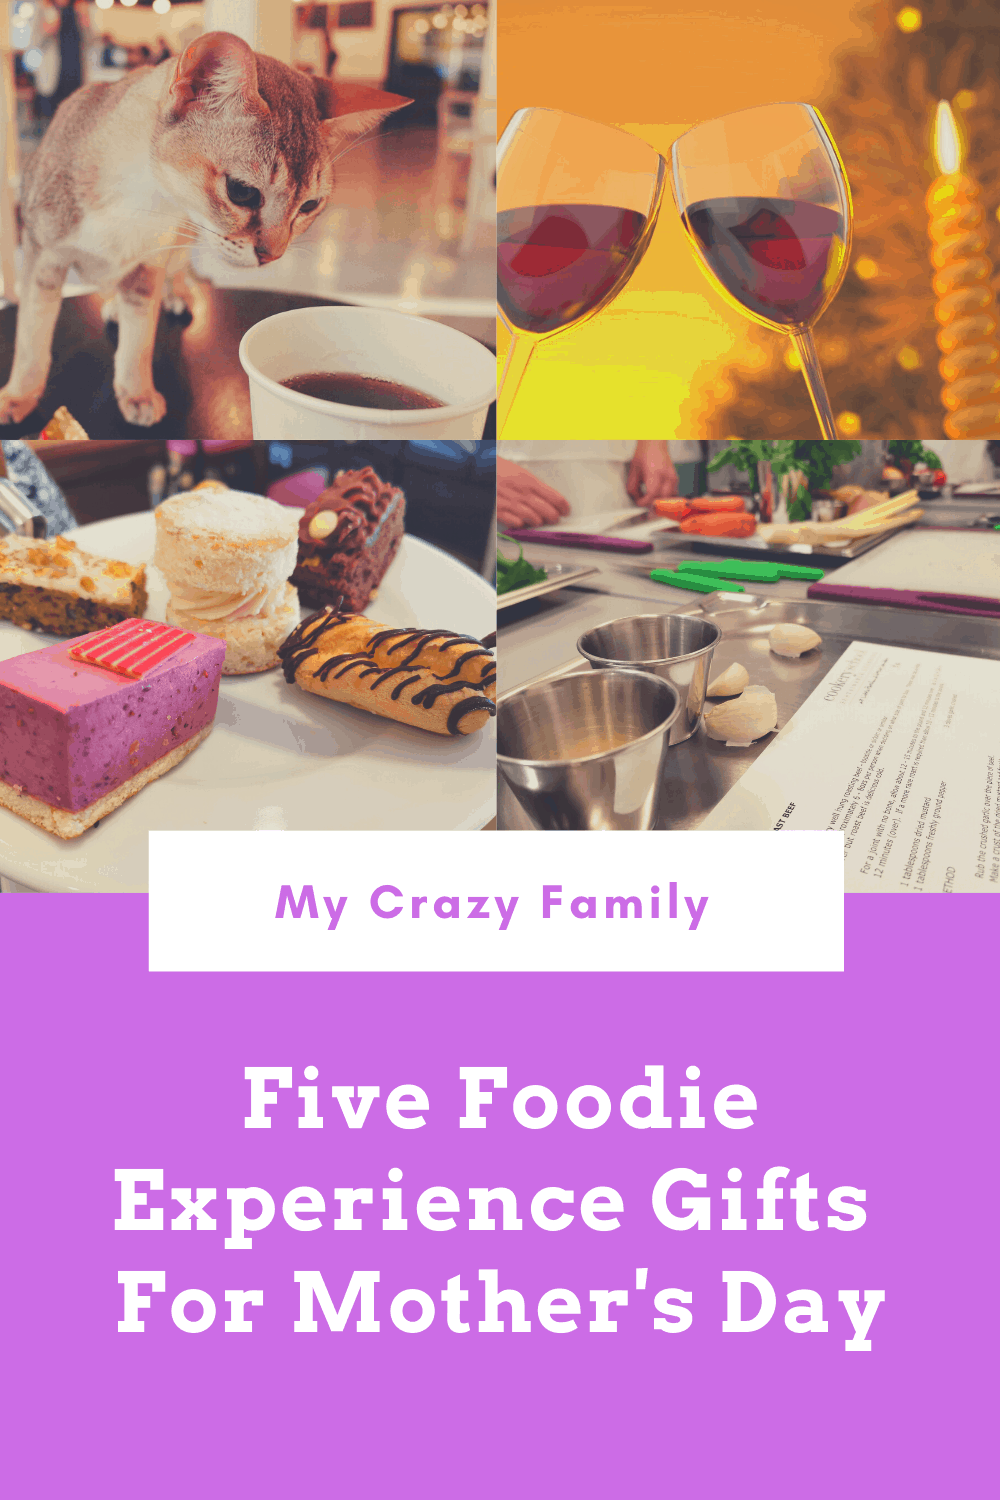 Mother's Day Foodie Experience Gifts